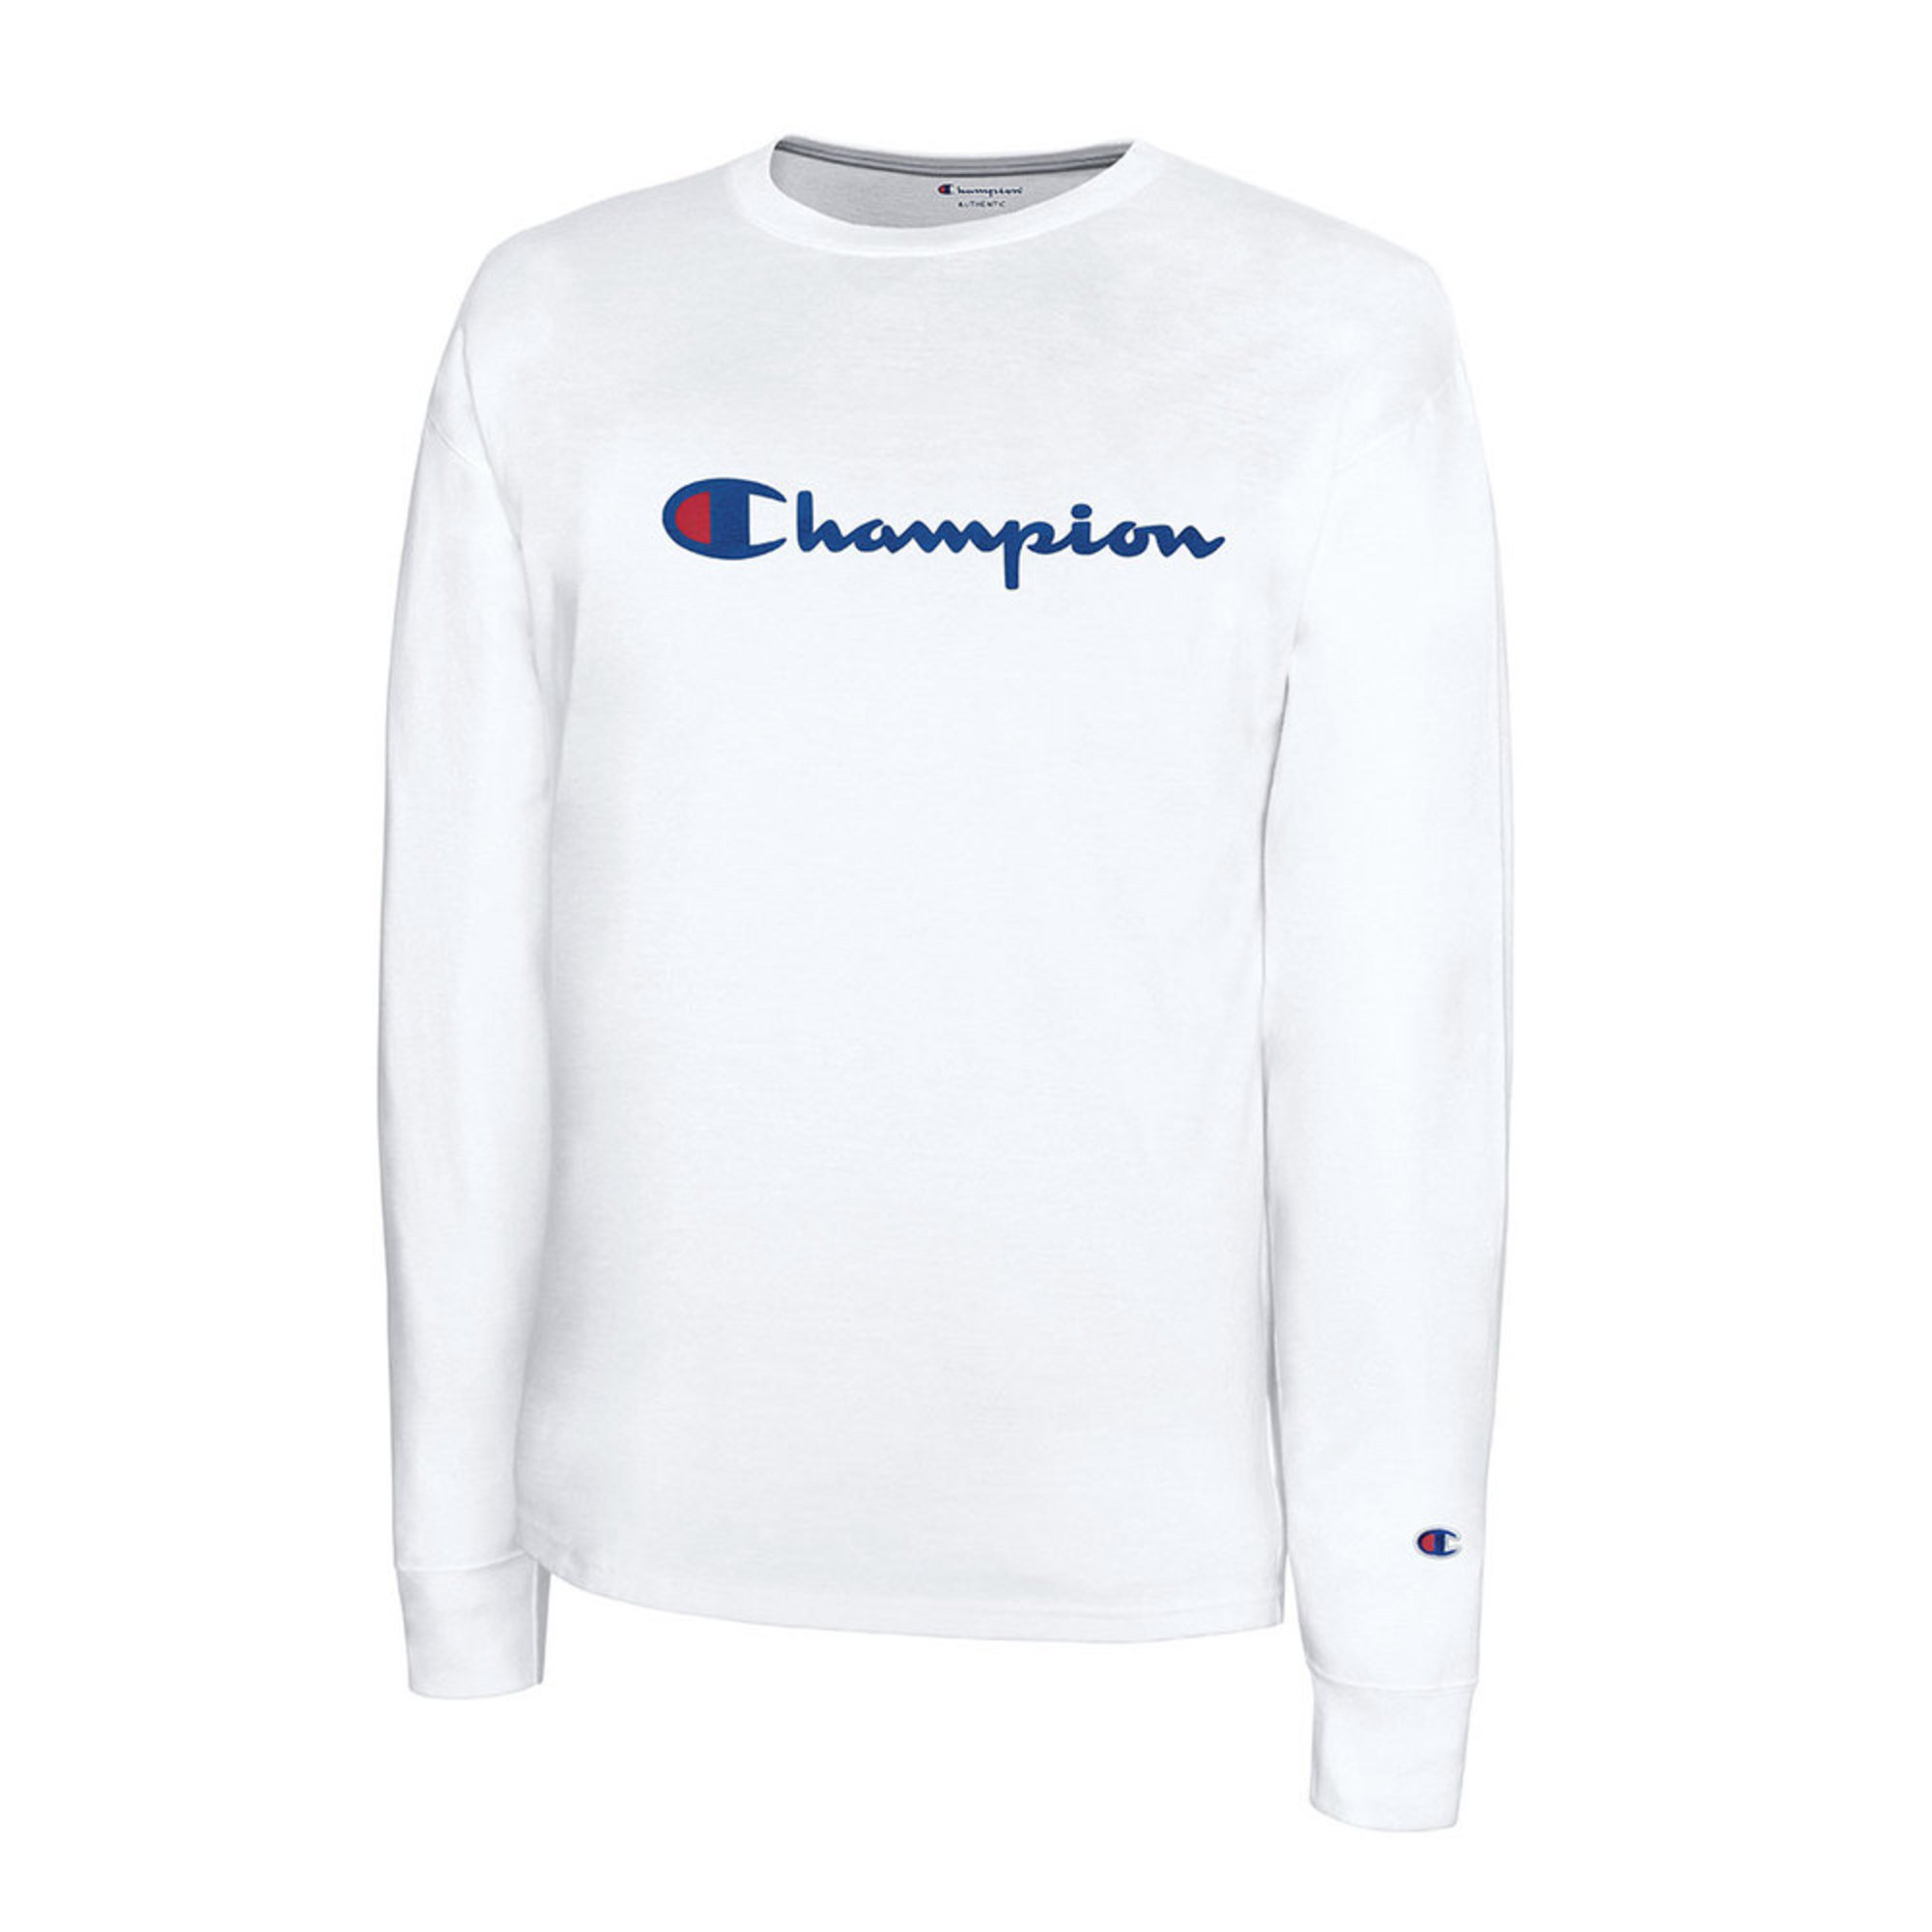 01ed48f7dd23 Champion Men's Graphic Long Sleeve Tee | Active Tees | Apparel ...